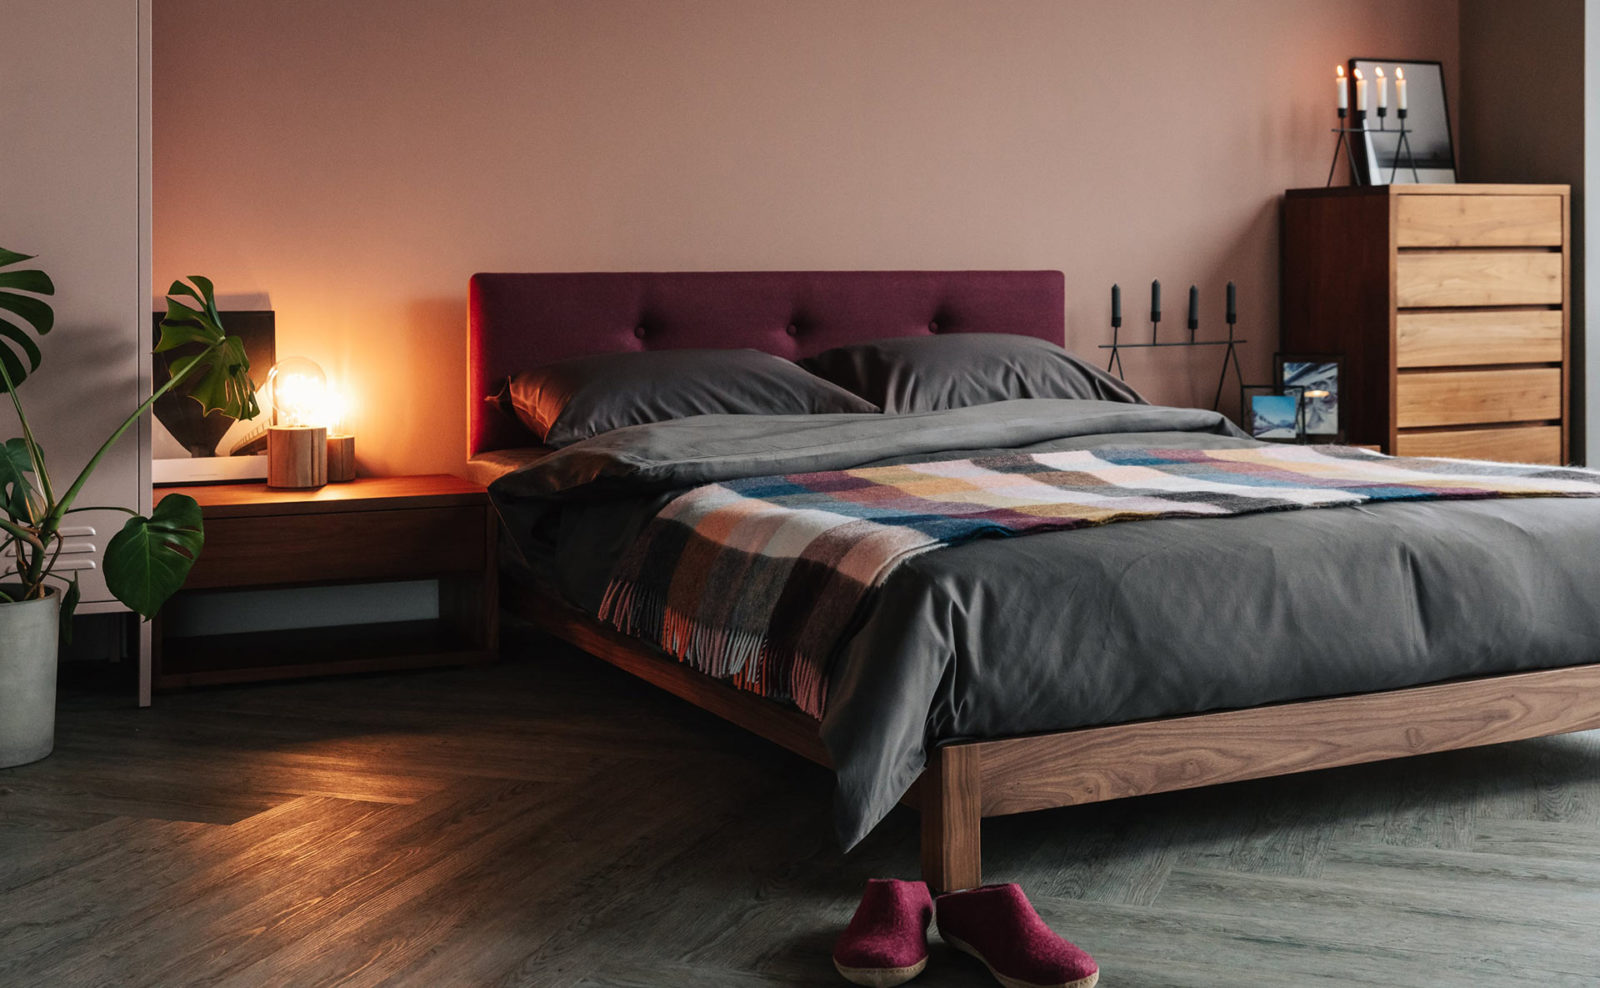 Cosy autumn bedroom setting for the upholstered wooden low Iona bed